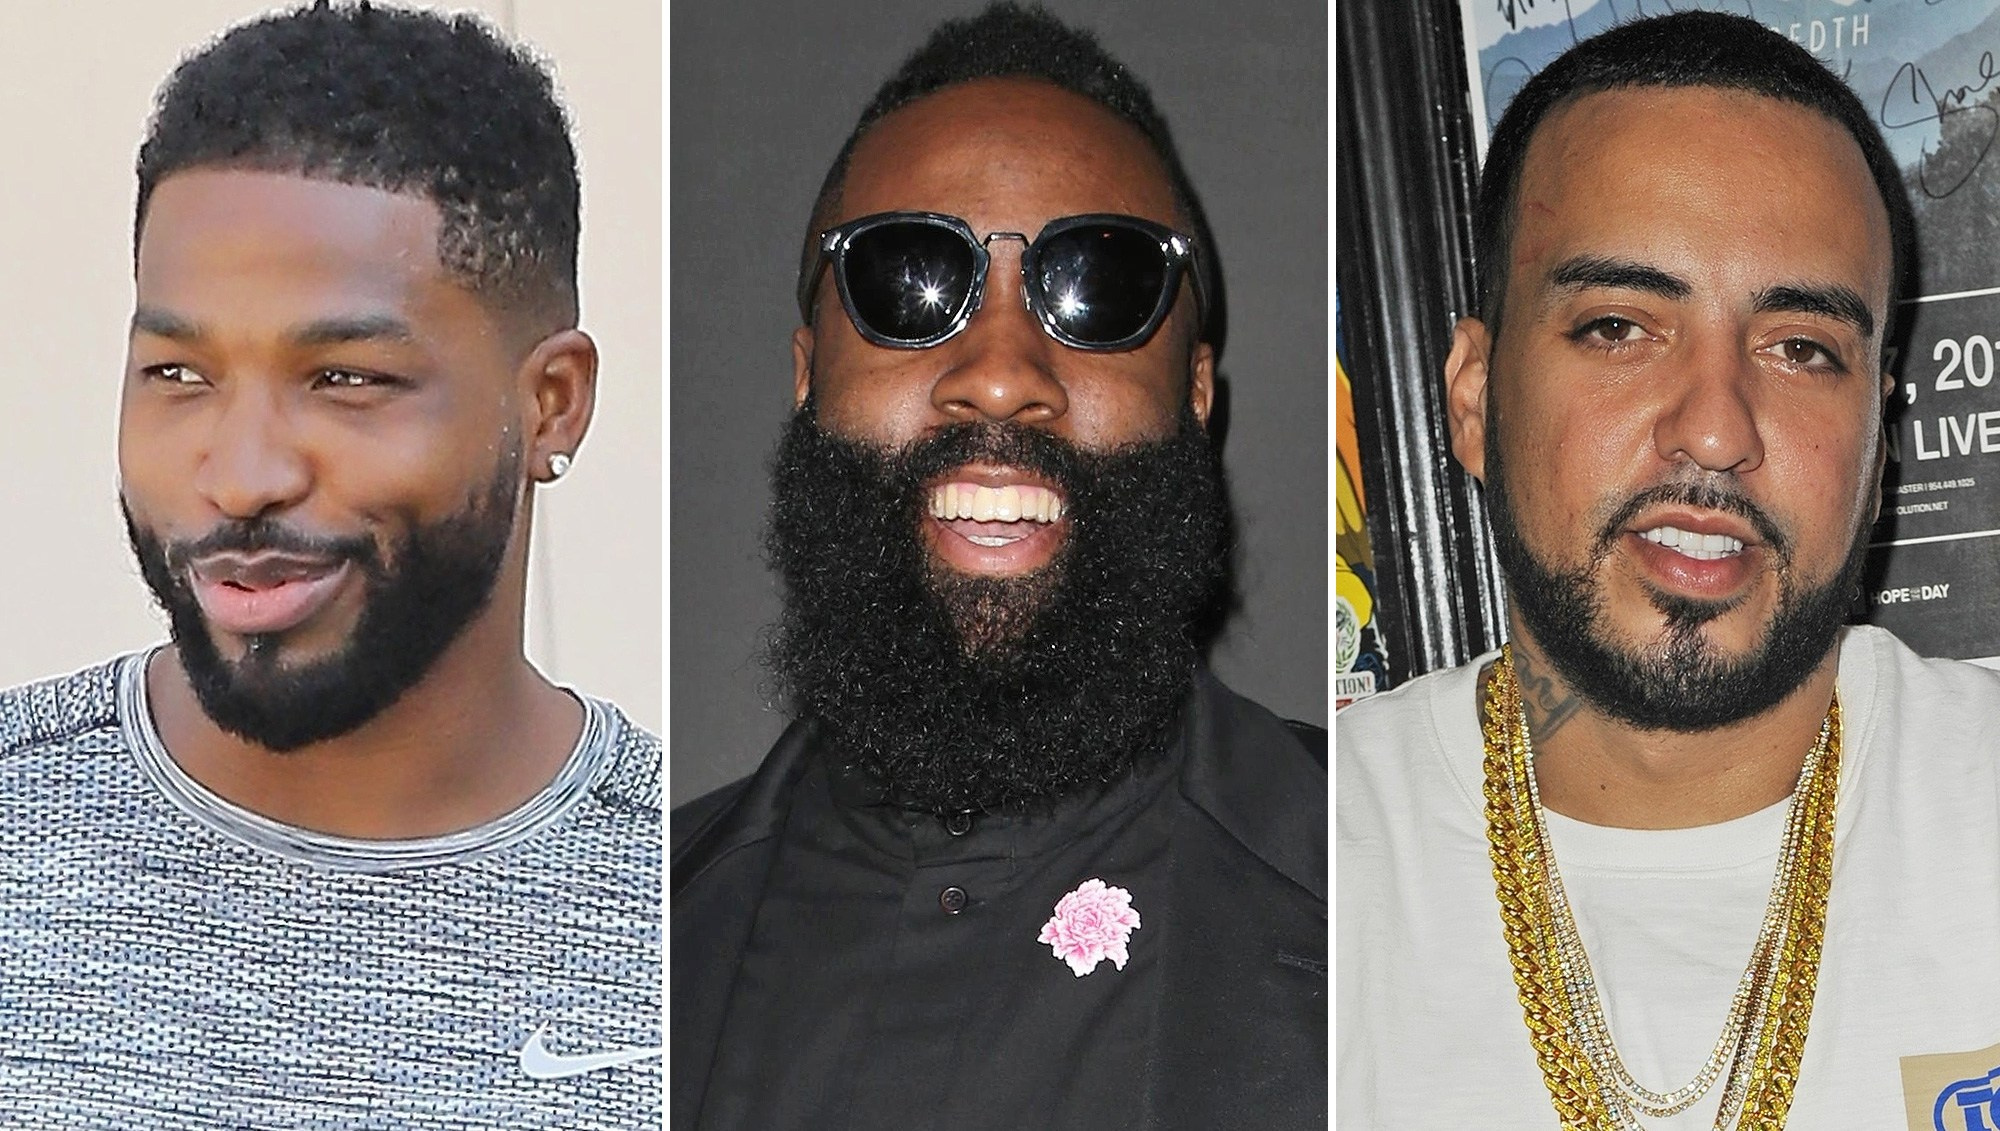 Tristan Thompson, James Harden, French Montana, Travis Scott, Khloe Kardashian